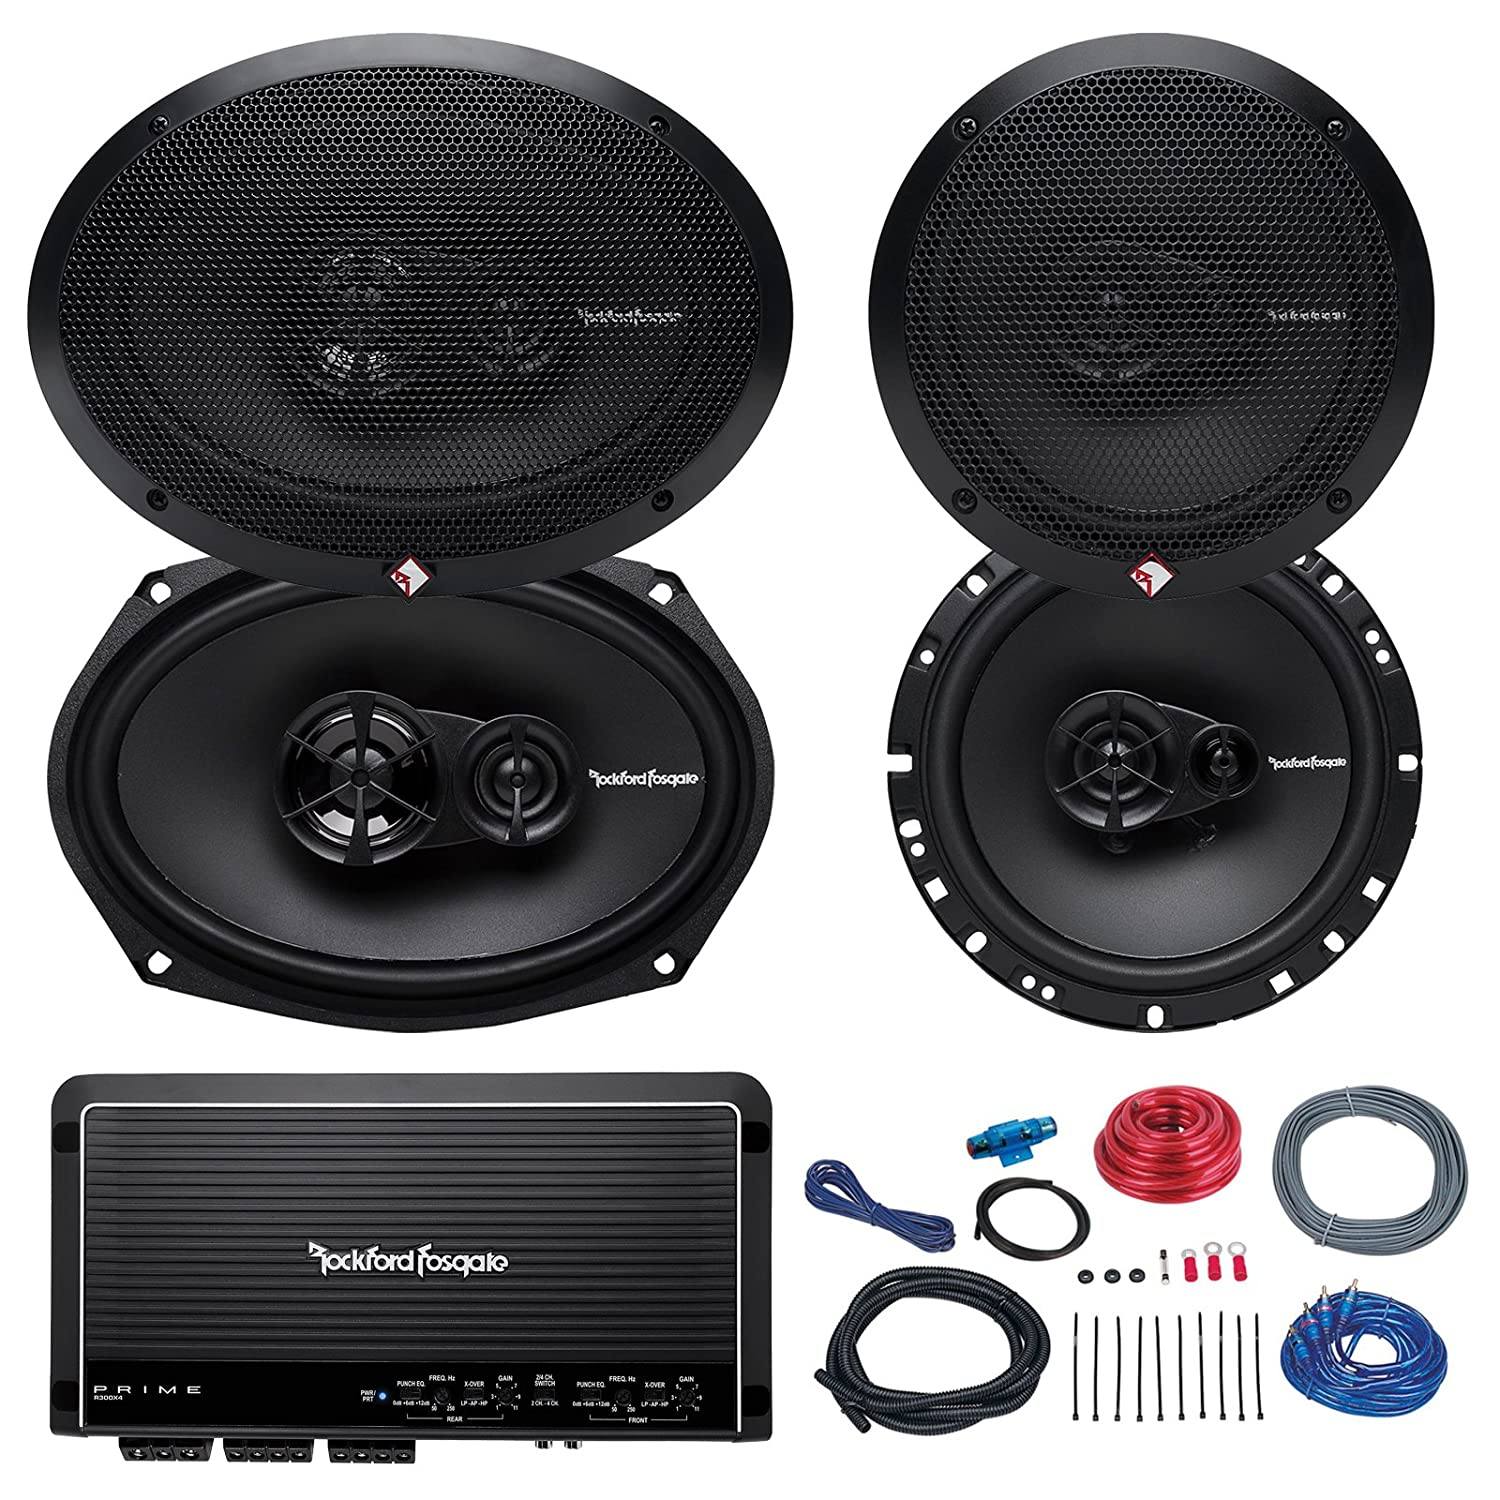 Shopping On The Web Car Speaker And Amp Combo Of 2x Rockford Fosgate Wiring Kit R165x3 Prime 65 Inch 180 Watt